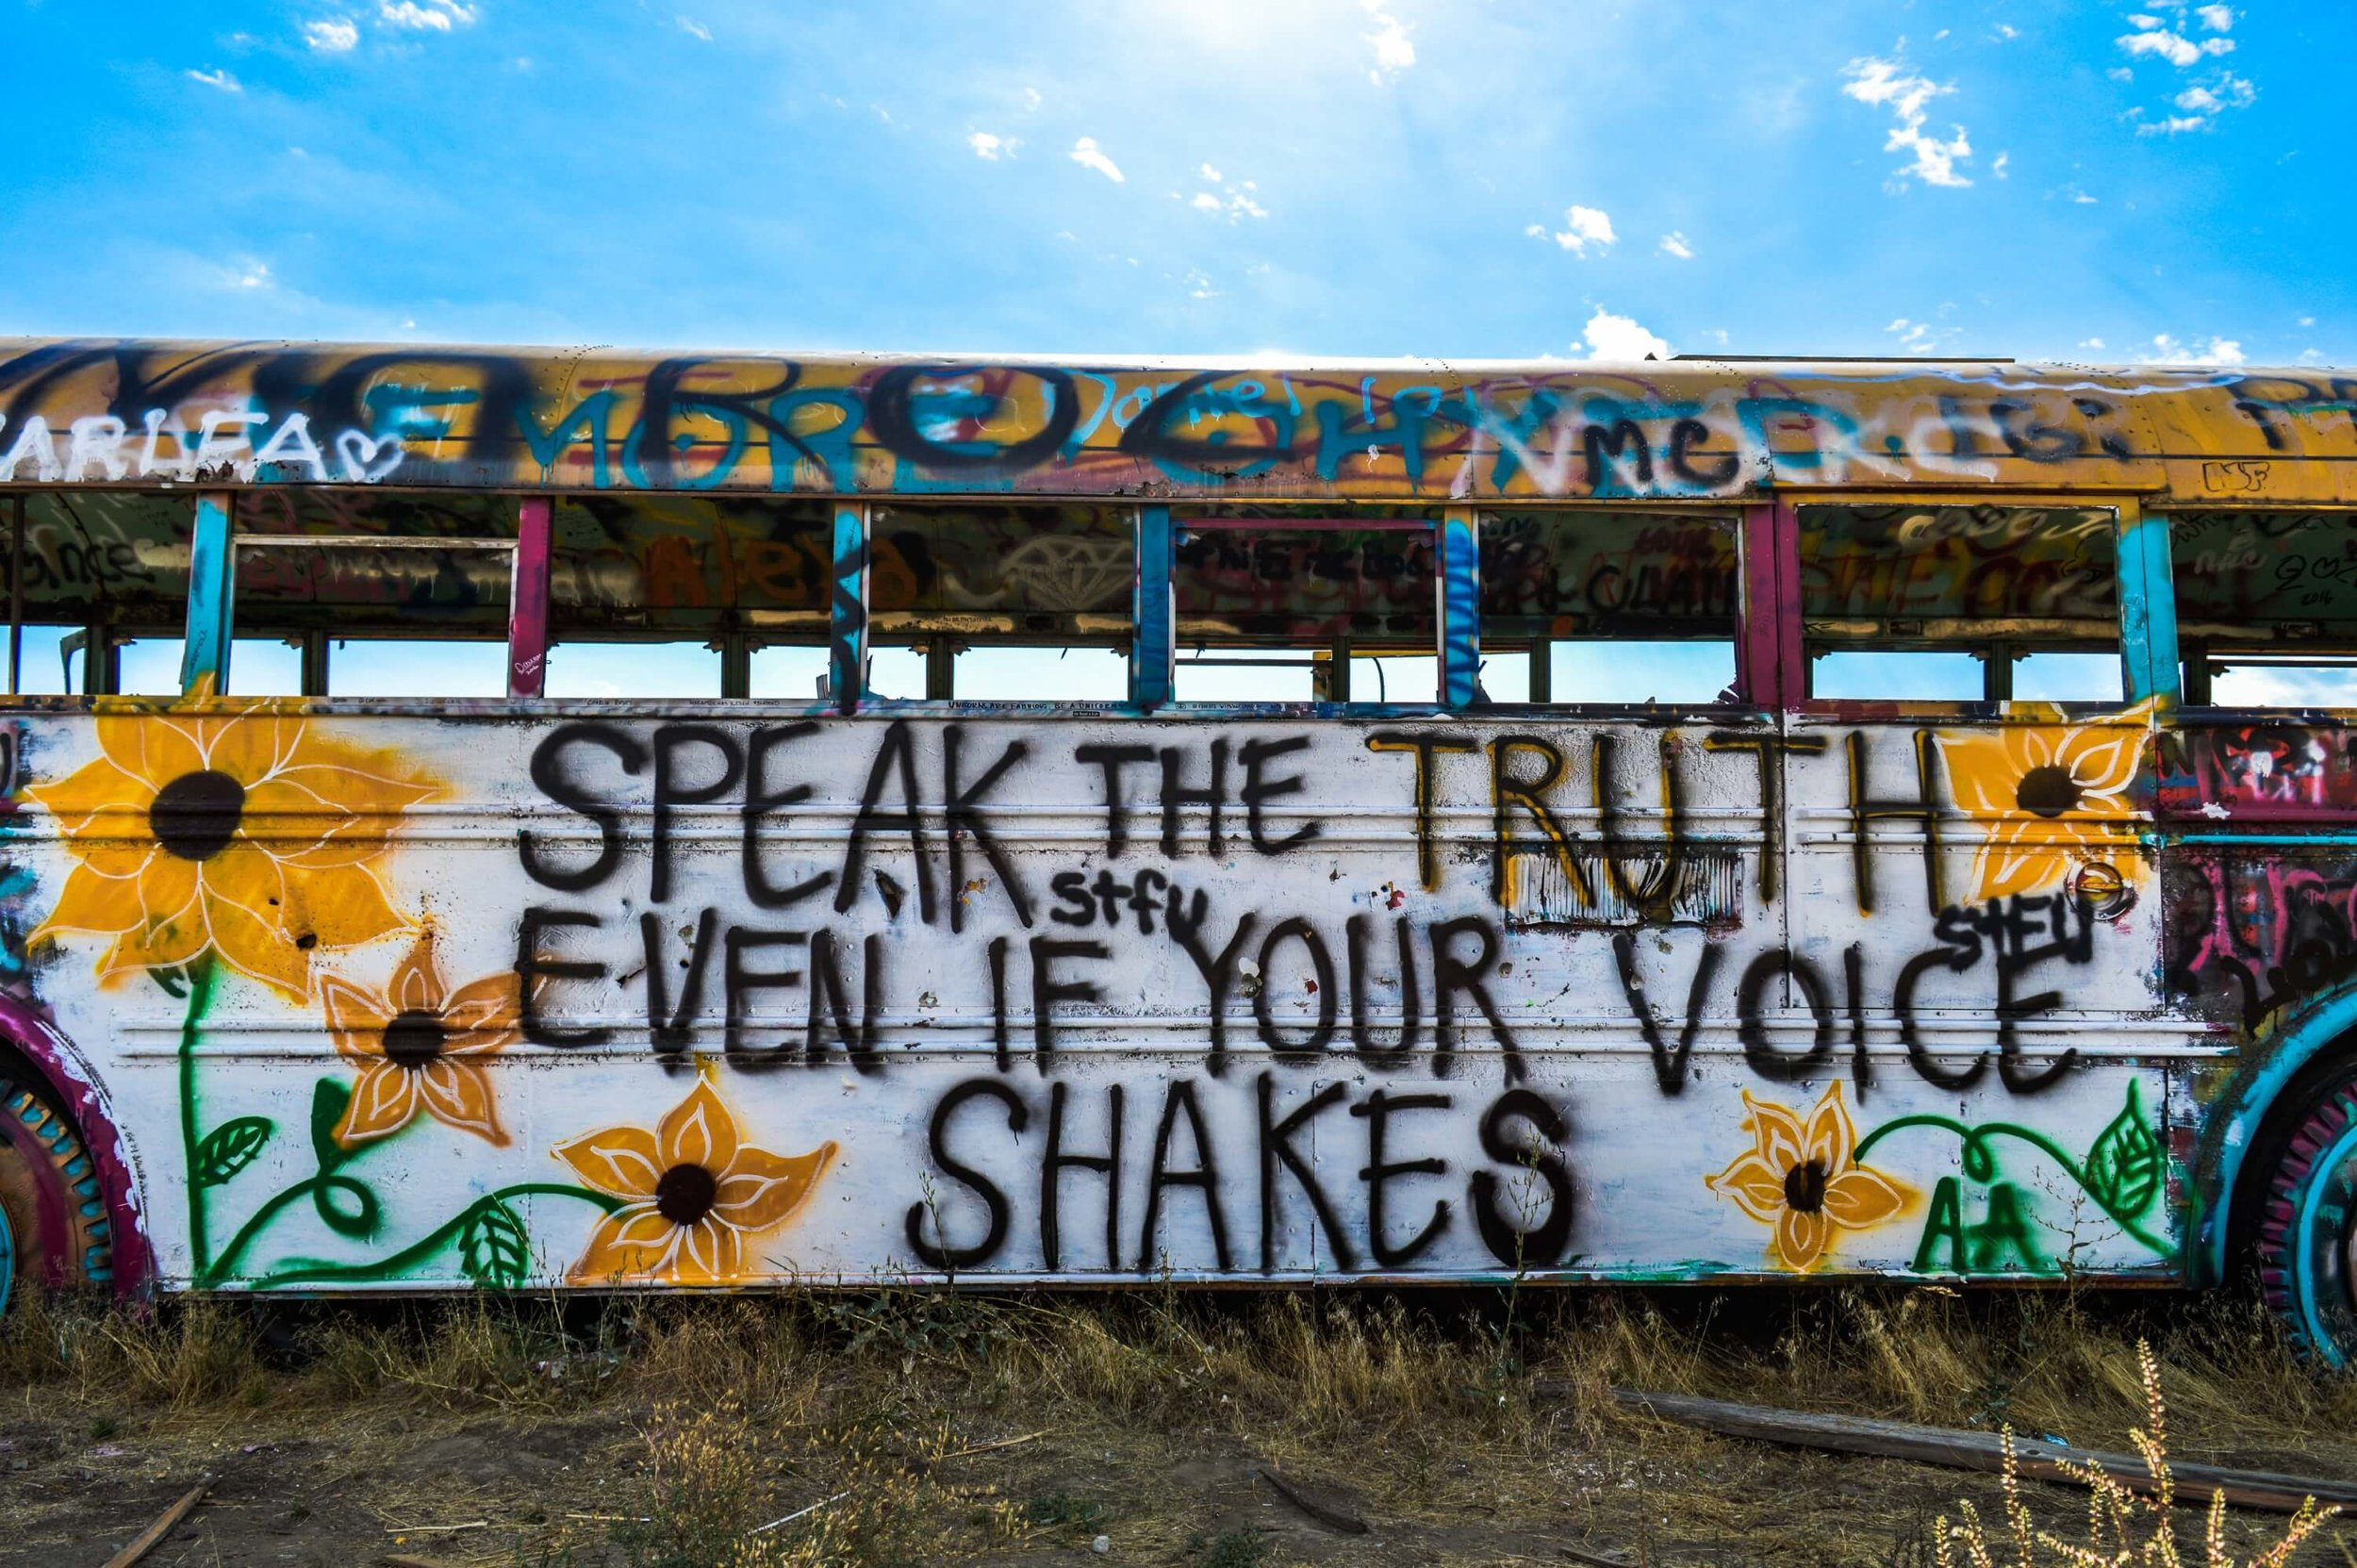 Speak the truth, even if your voice shakes